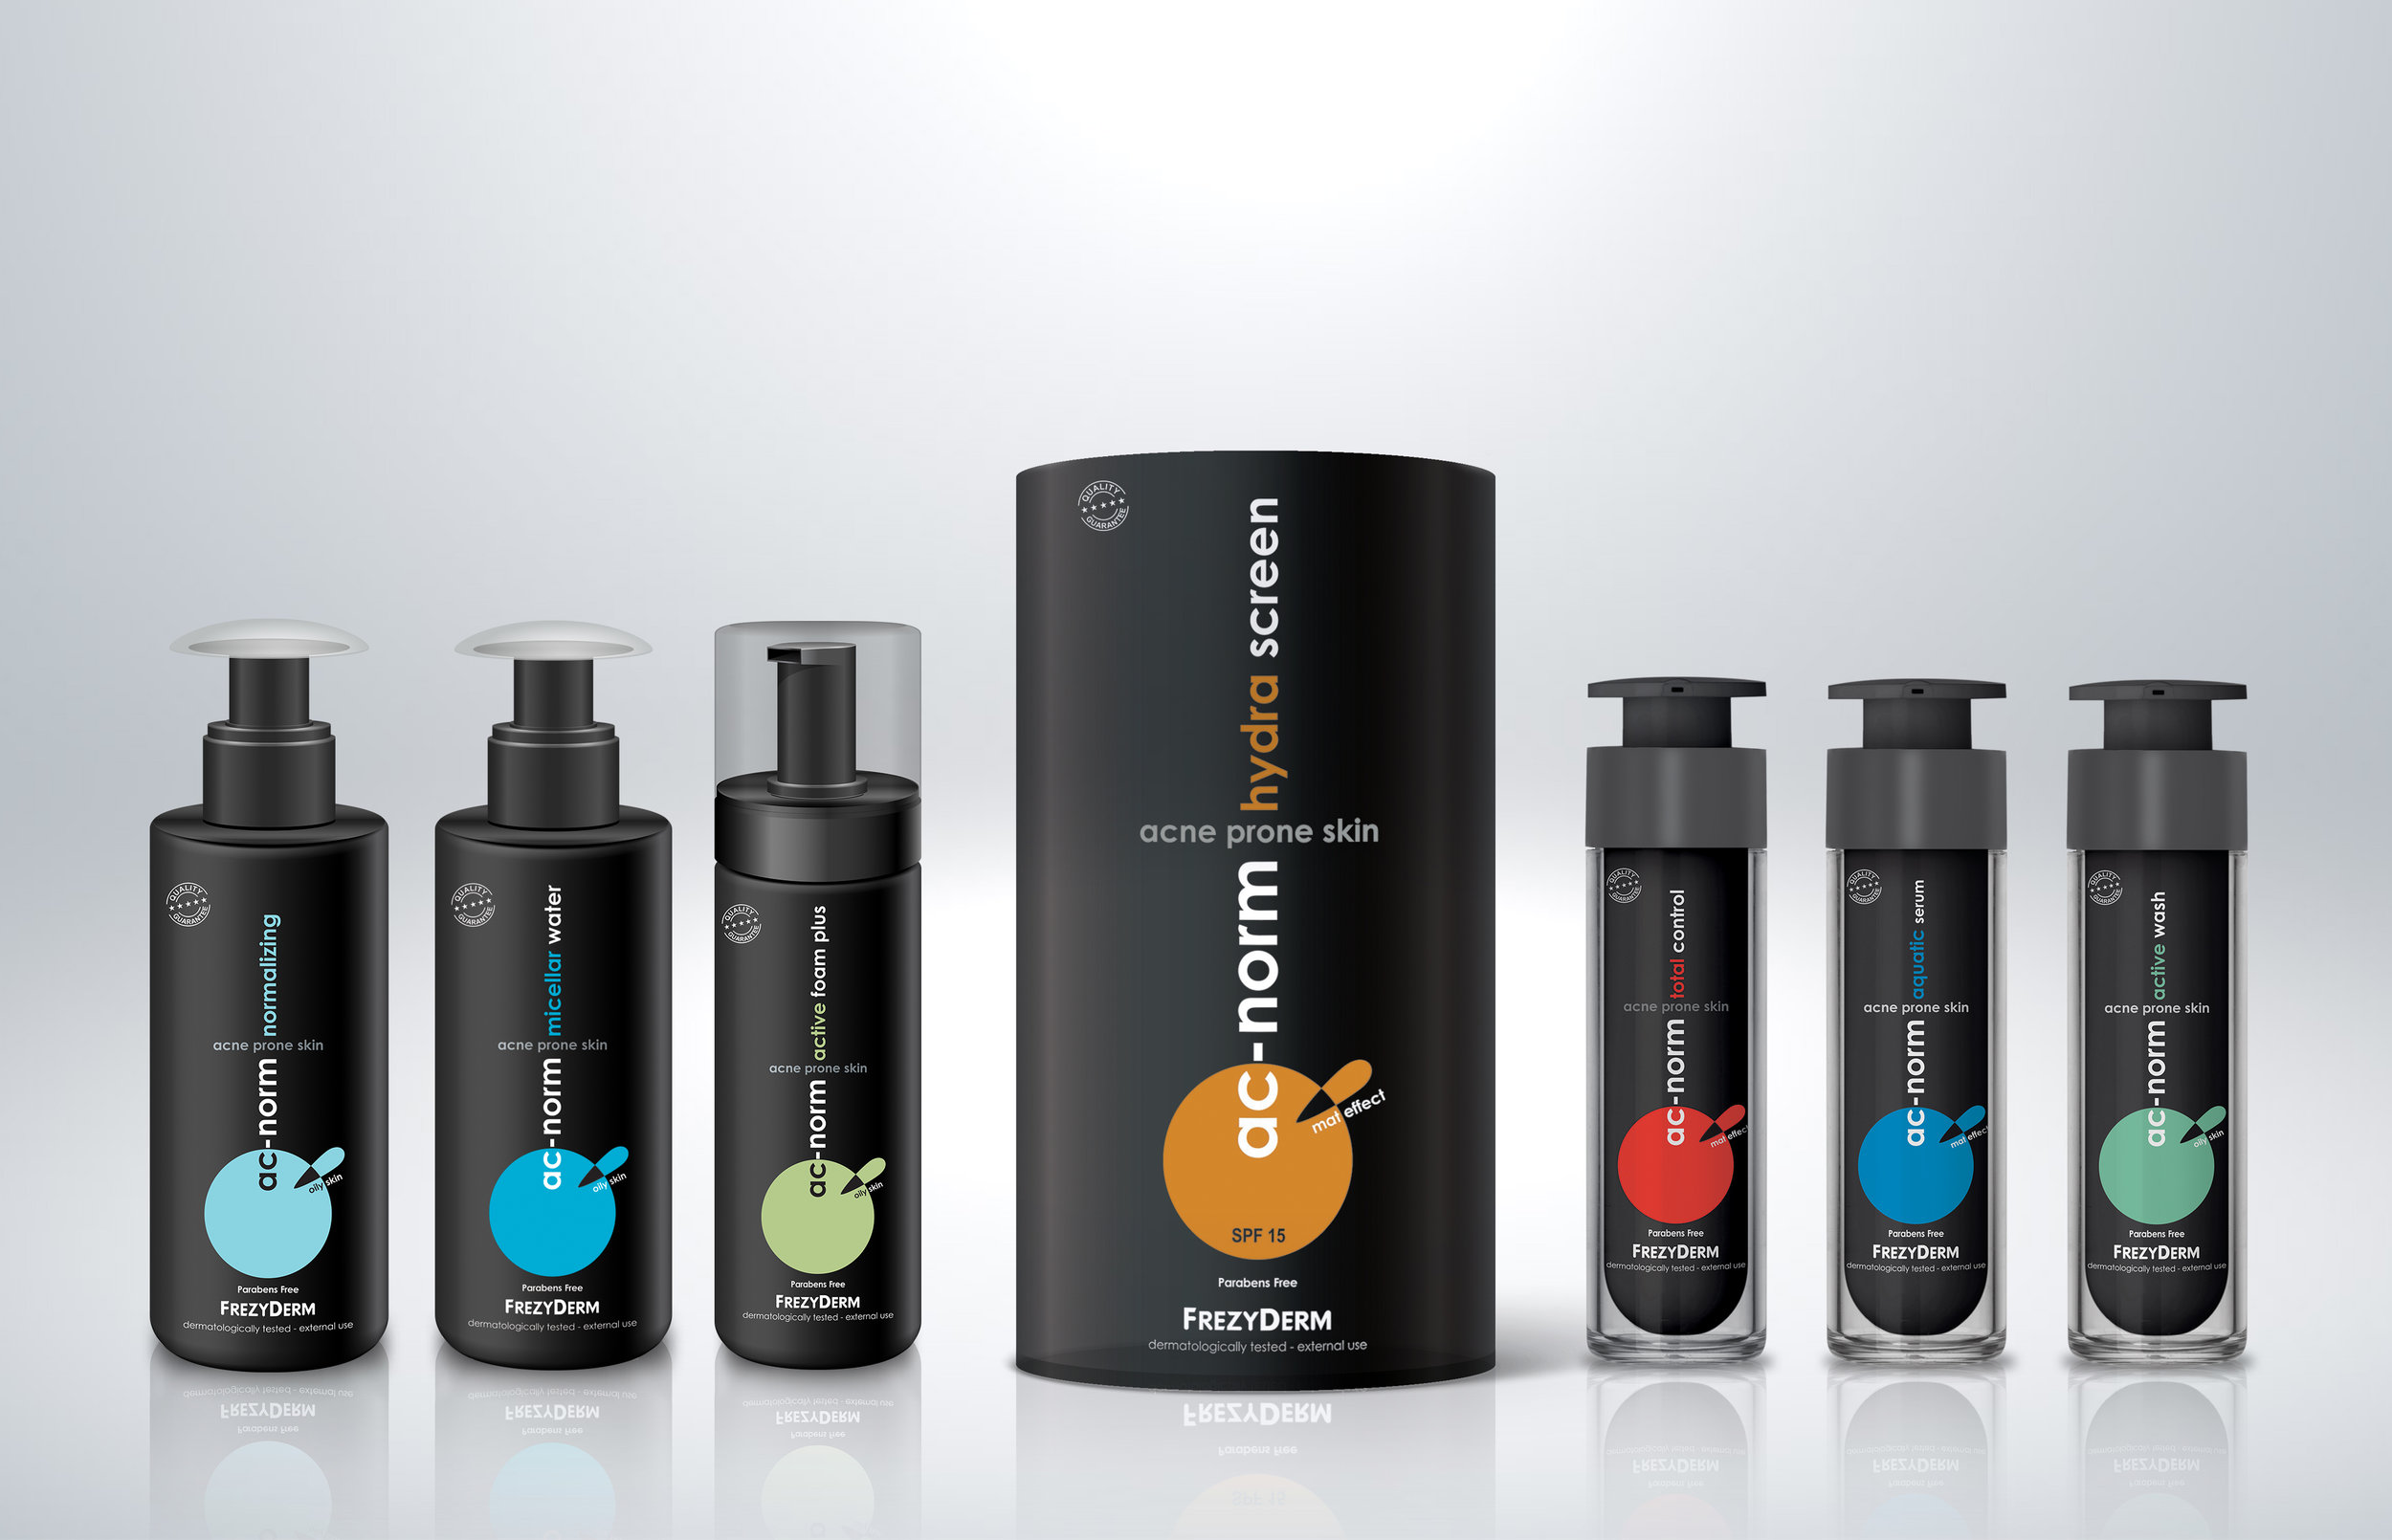 Pharmaceutical Acne Treatment Complete Product Range / World Brand & Packaging Design Society